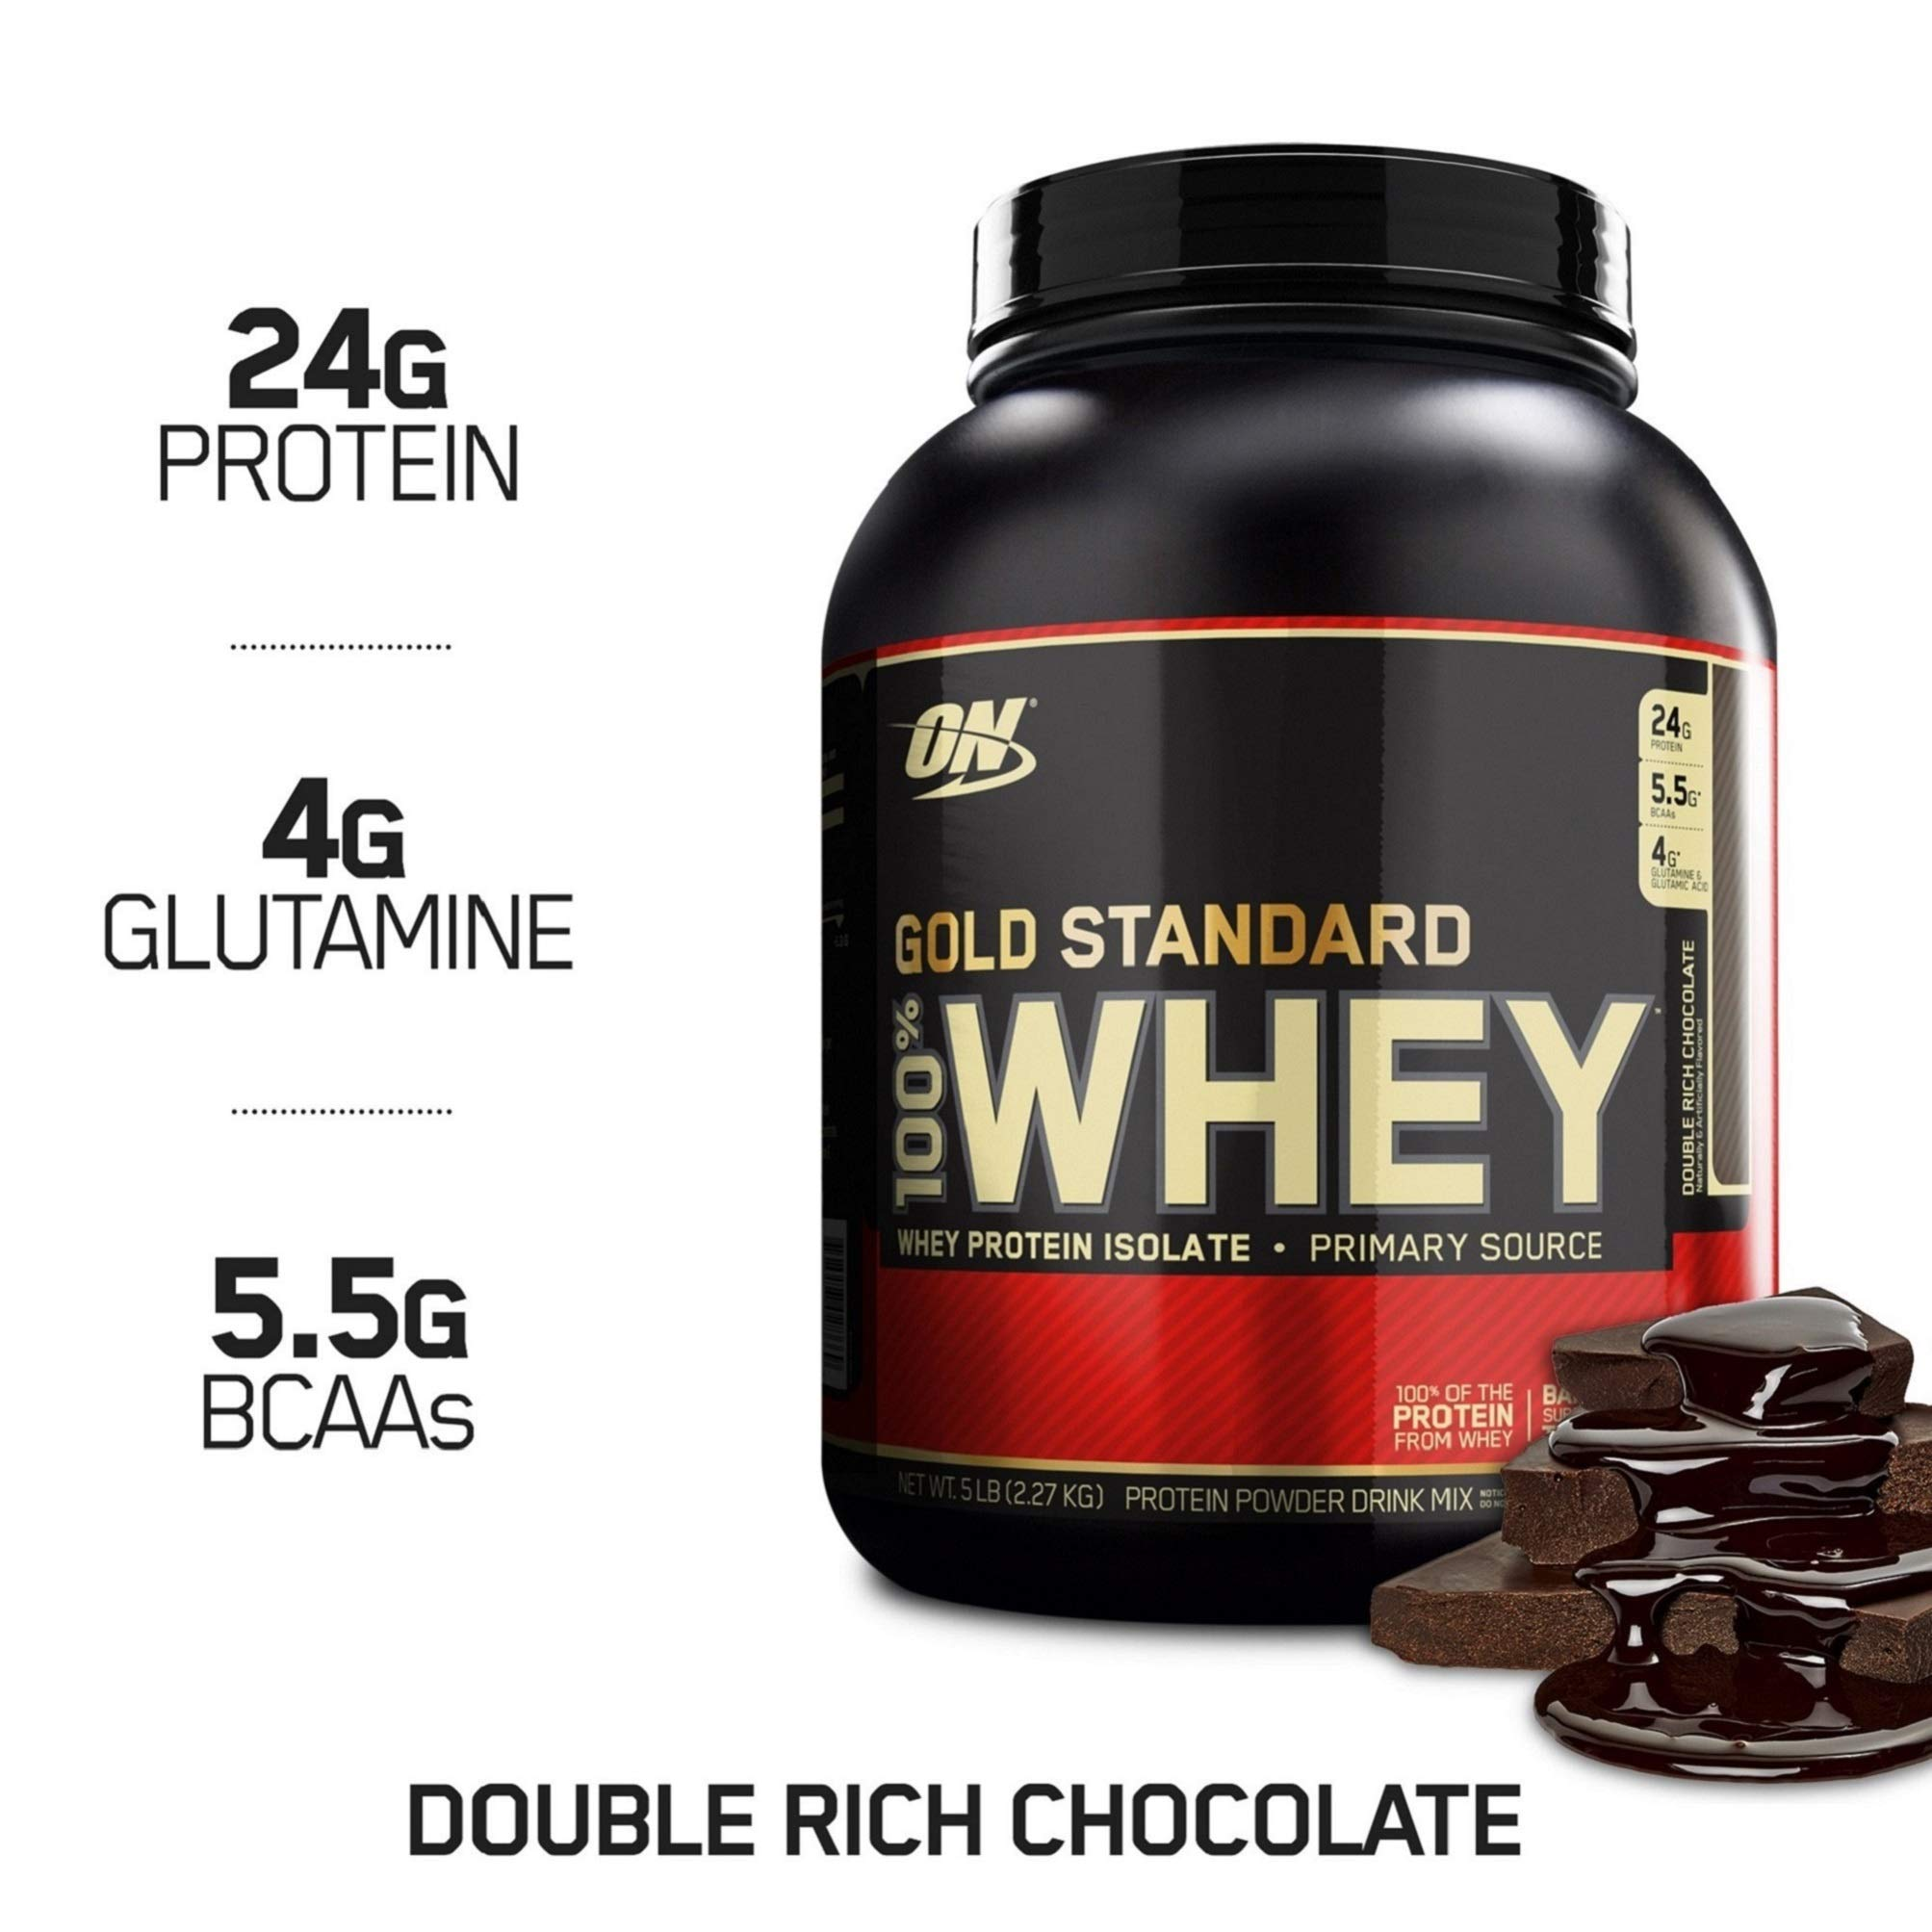 OPTIMUM NUTRITION GOLD STANDARD 100% Whey Protein Powder, Double Rich Chocolate, 2.27 kg, Packaging may Vary product image